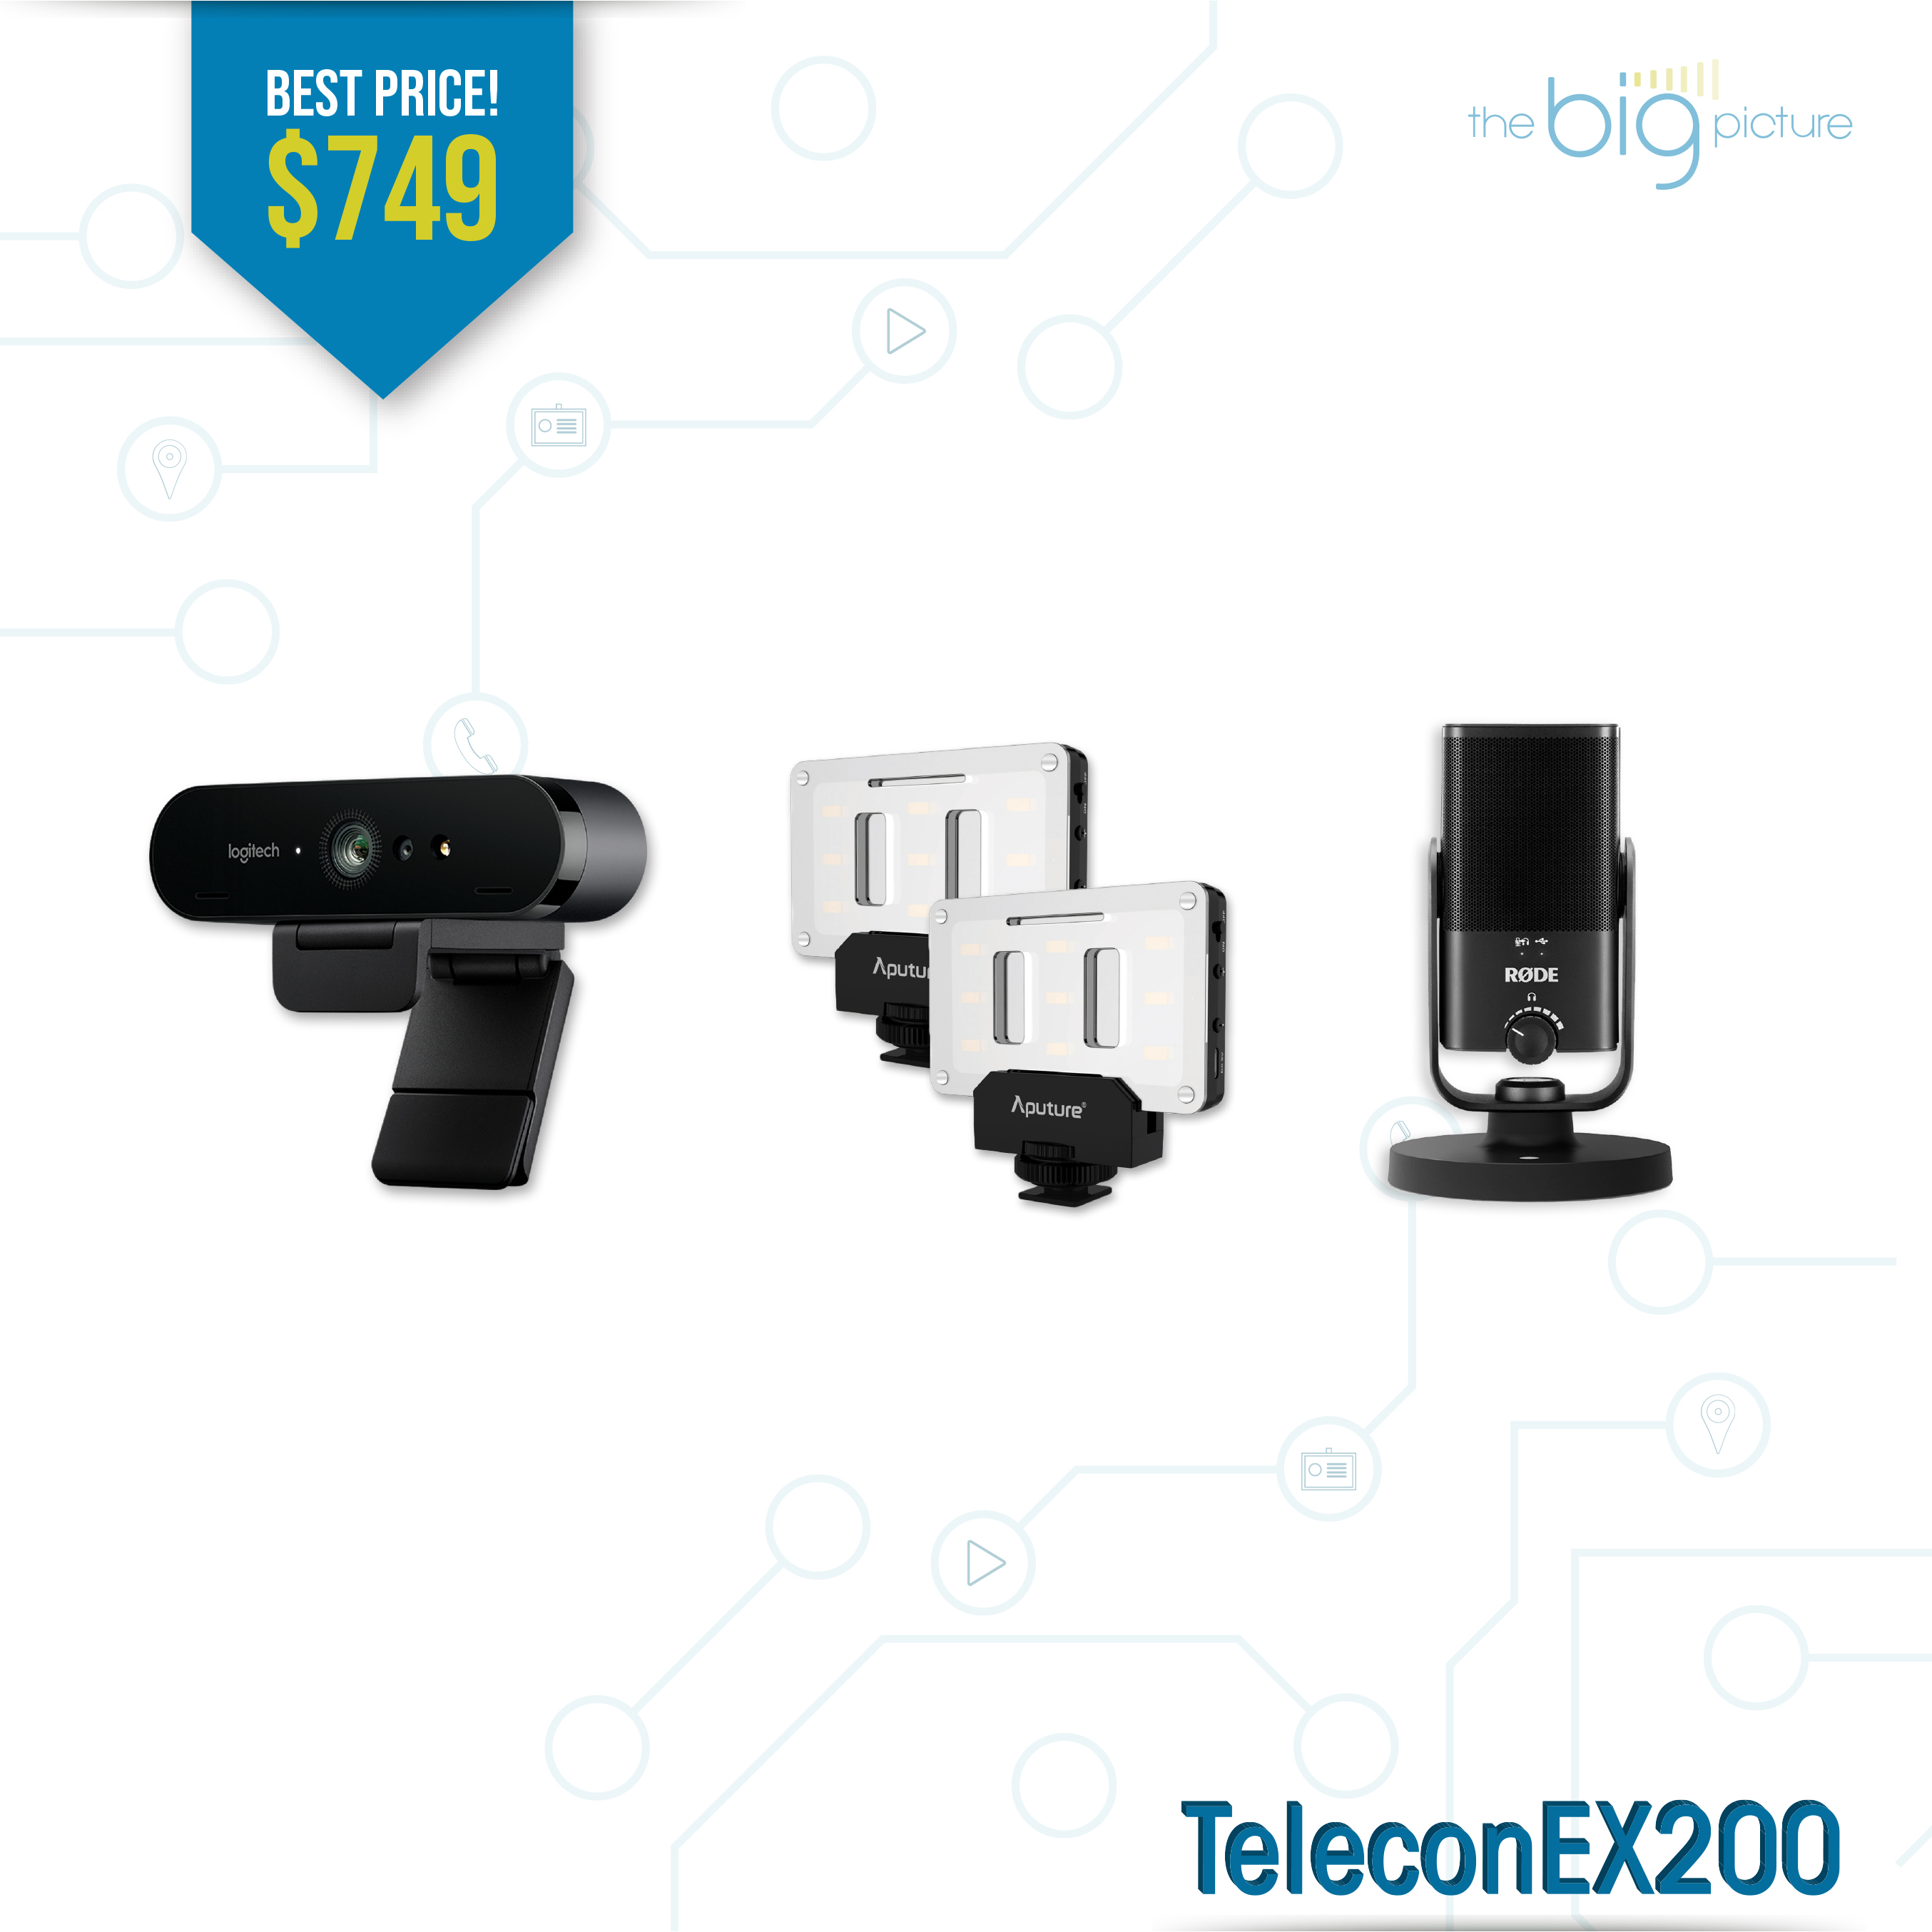 A set of products for TeleconEx200